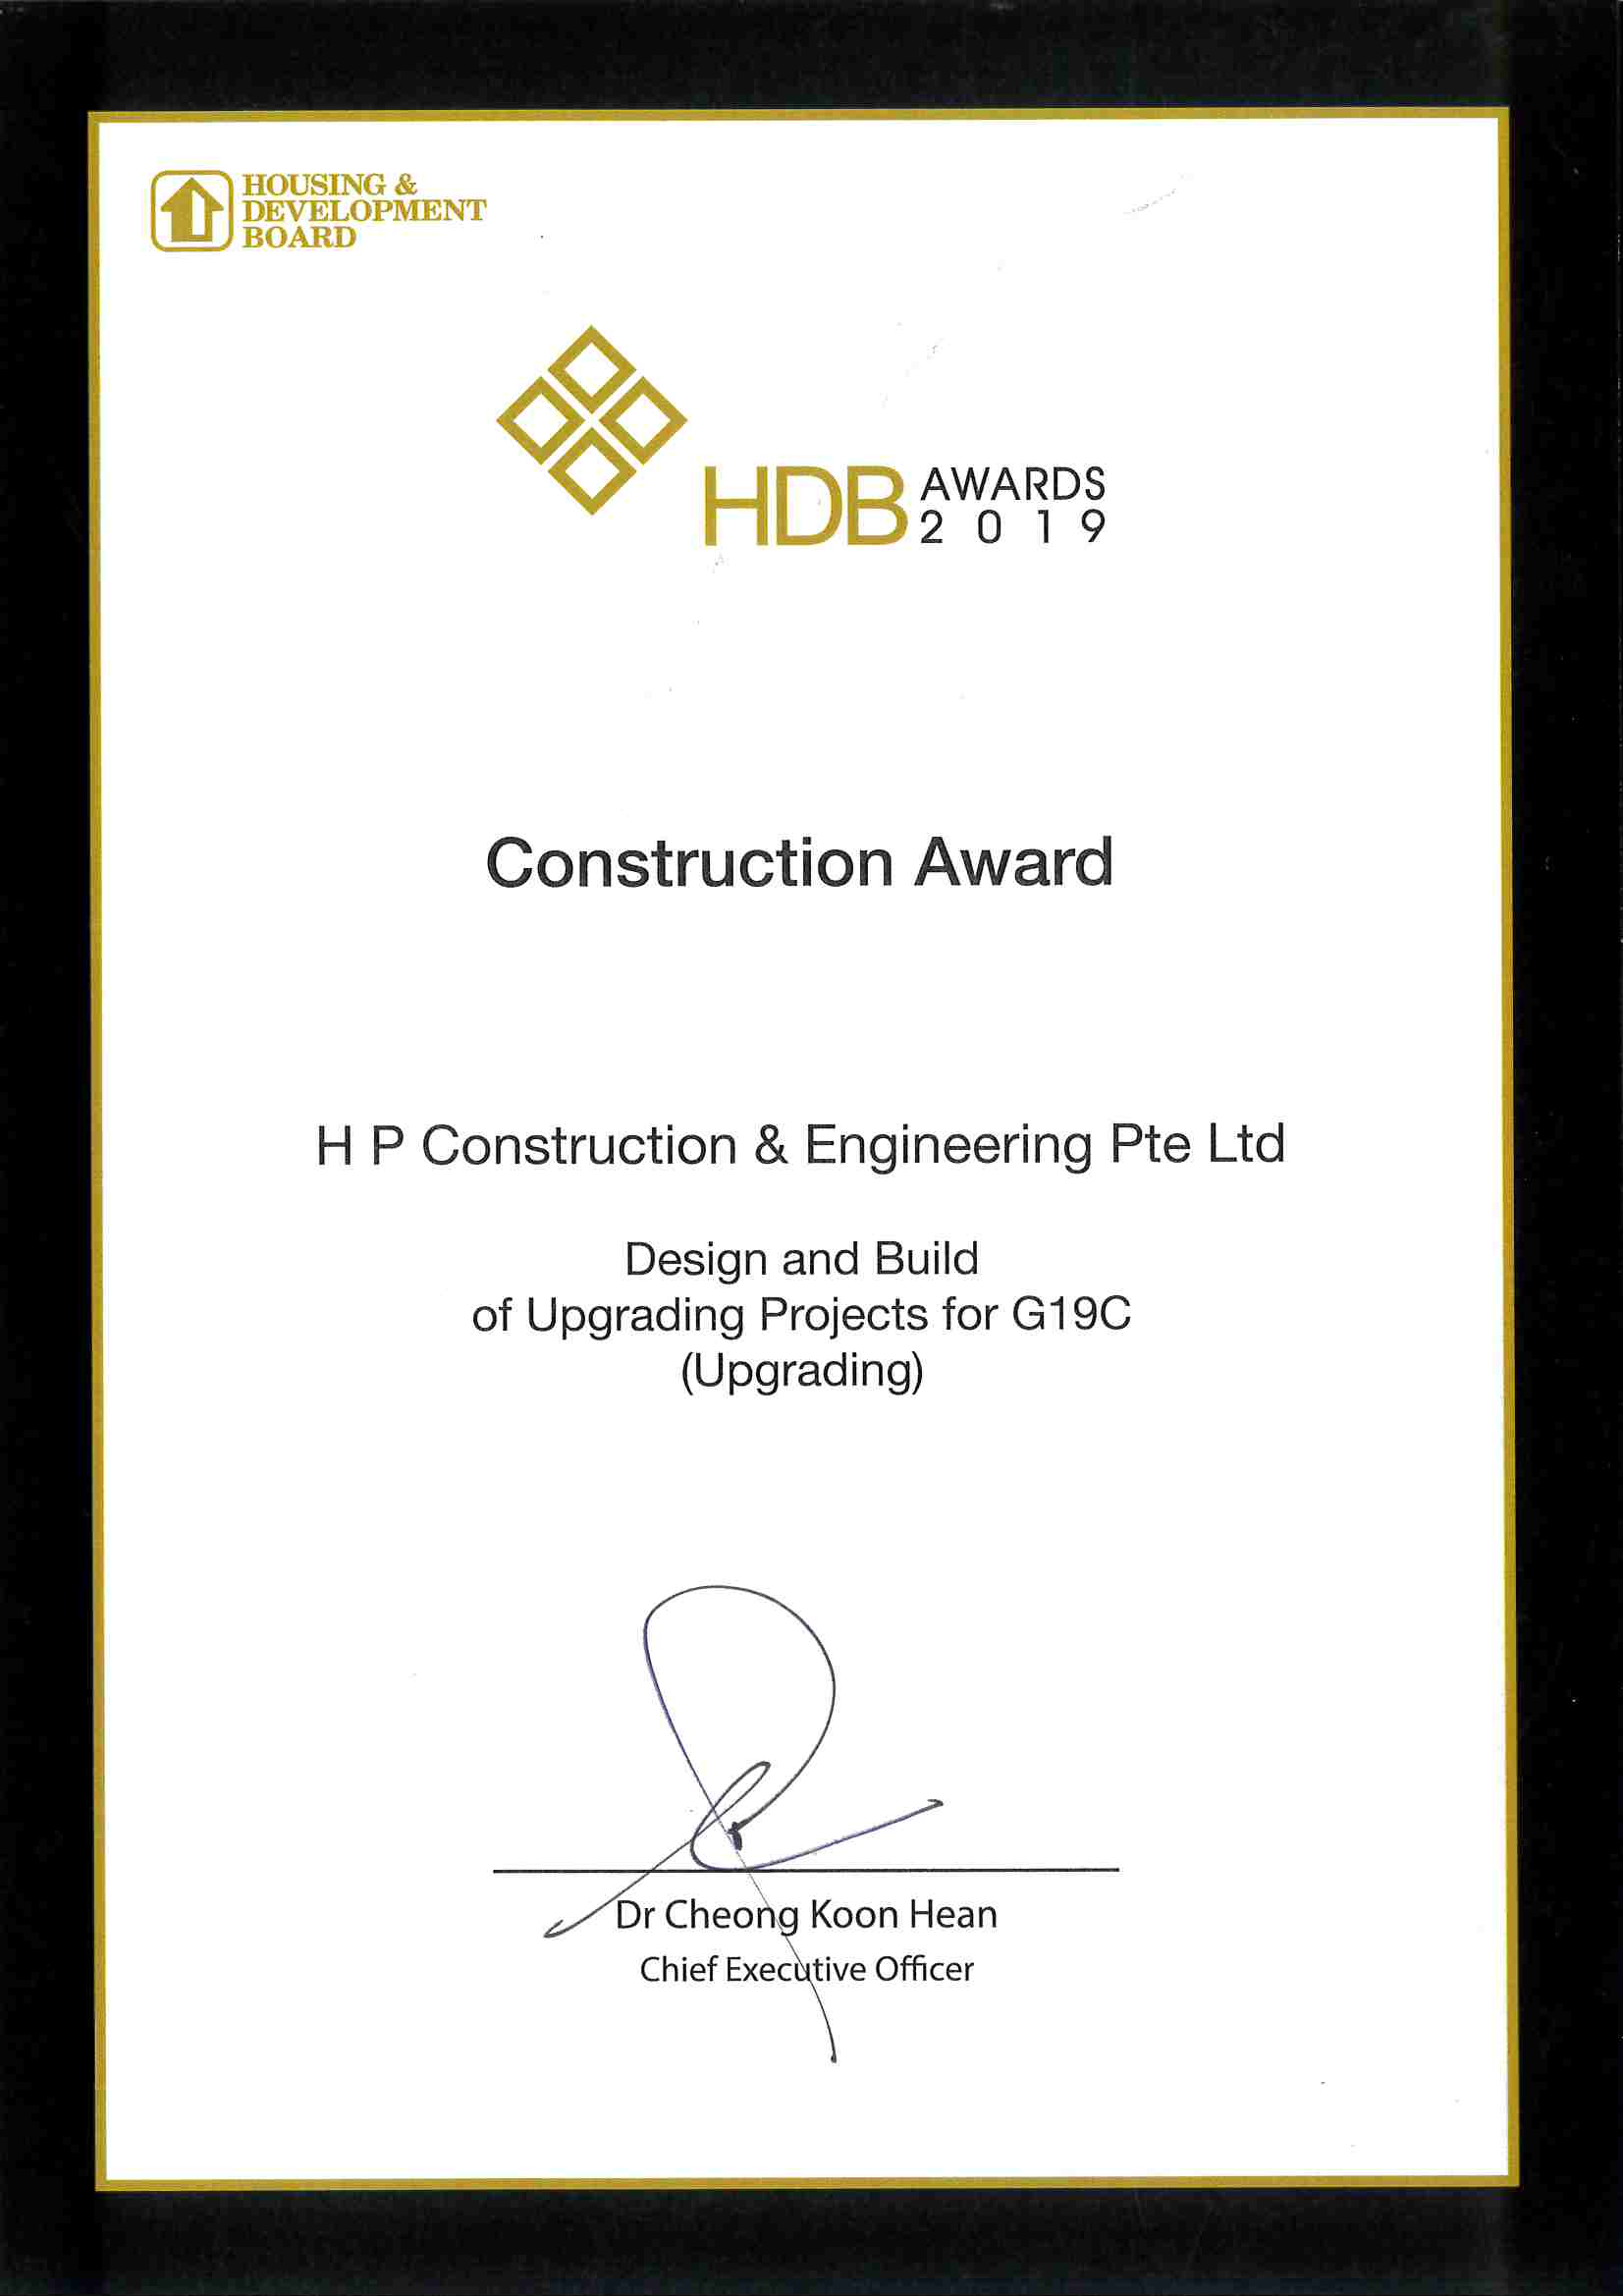 HDB Construction Awards 2019 G19C